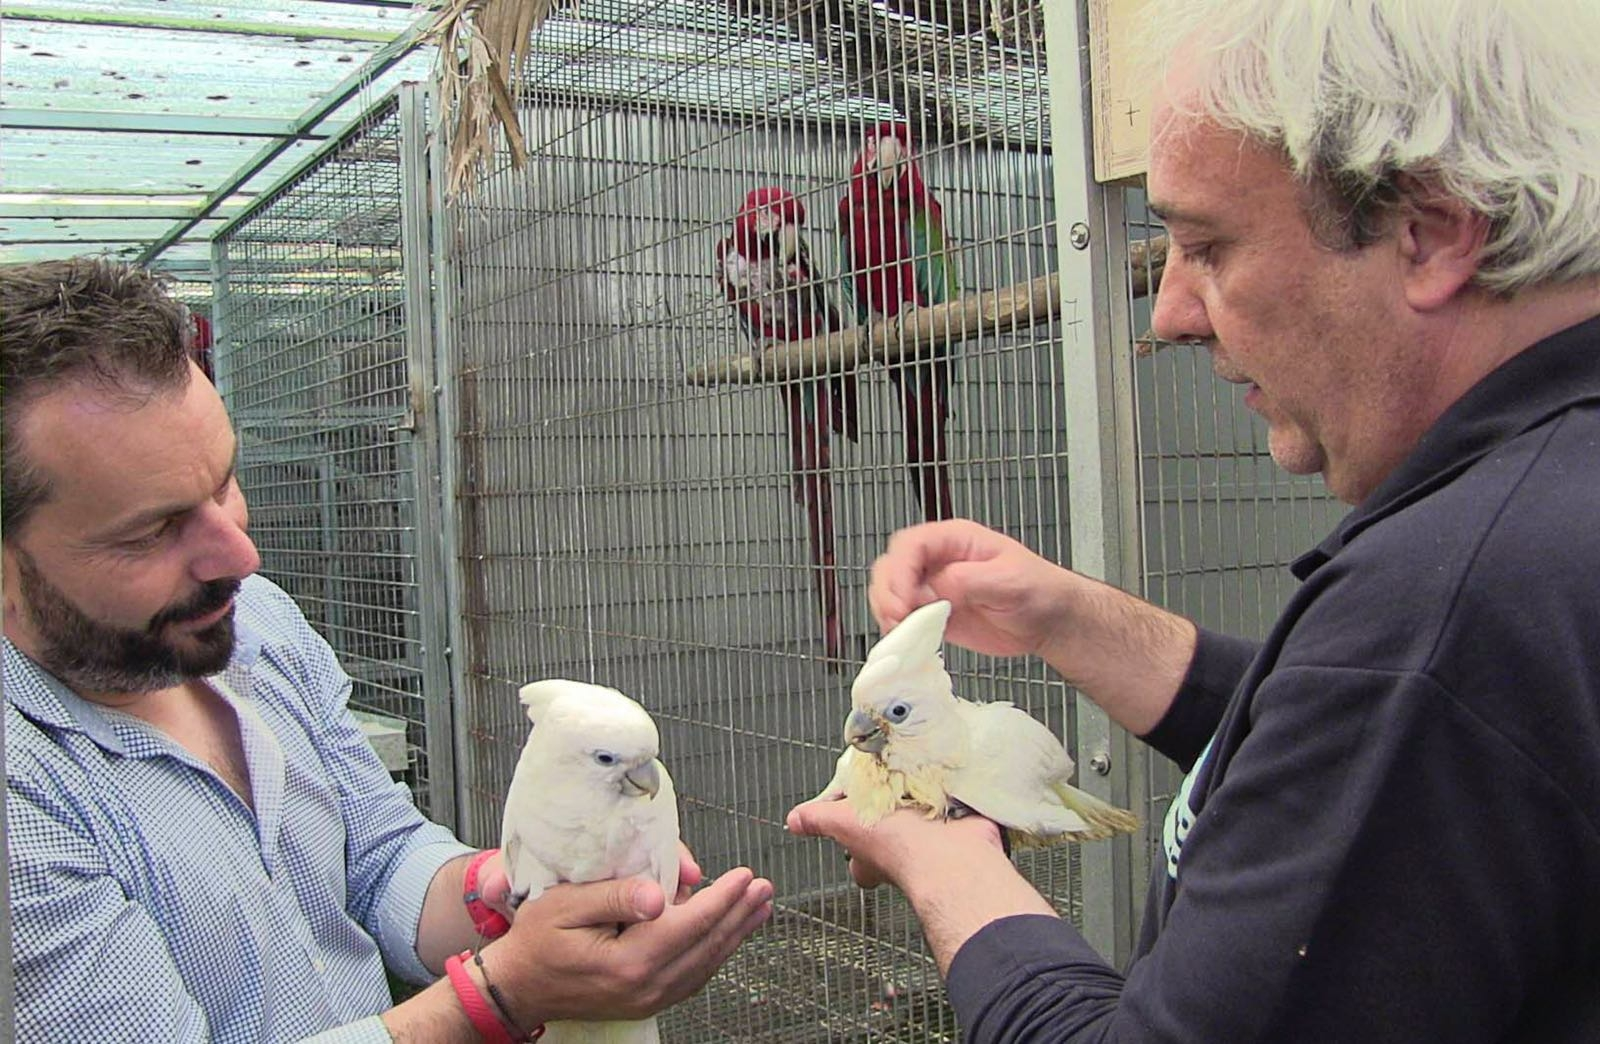 Left to right: Mayor of Gondomar (Galicia, Spain), Javier Penedo (ABE Judge and Secretary for ACAE) and Sinchan the Cockatoo and a sibling.